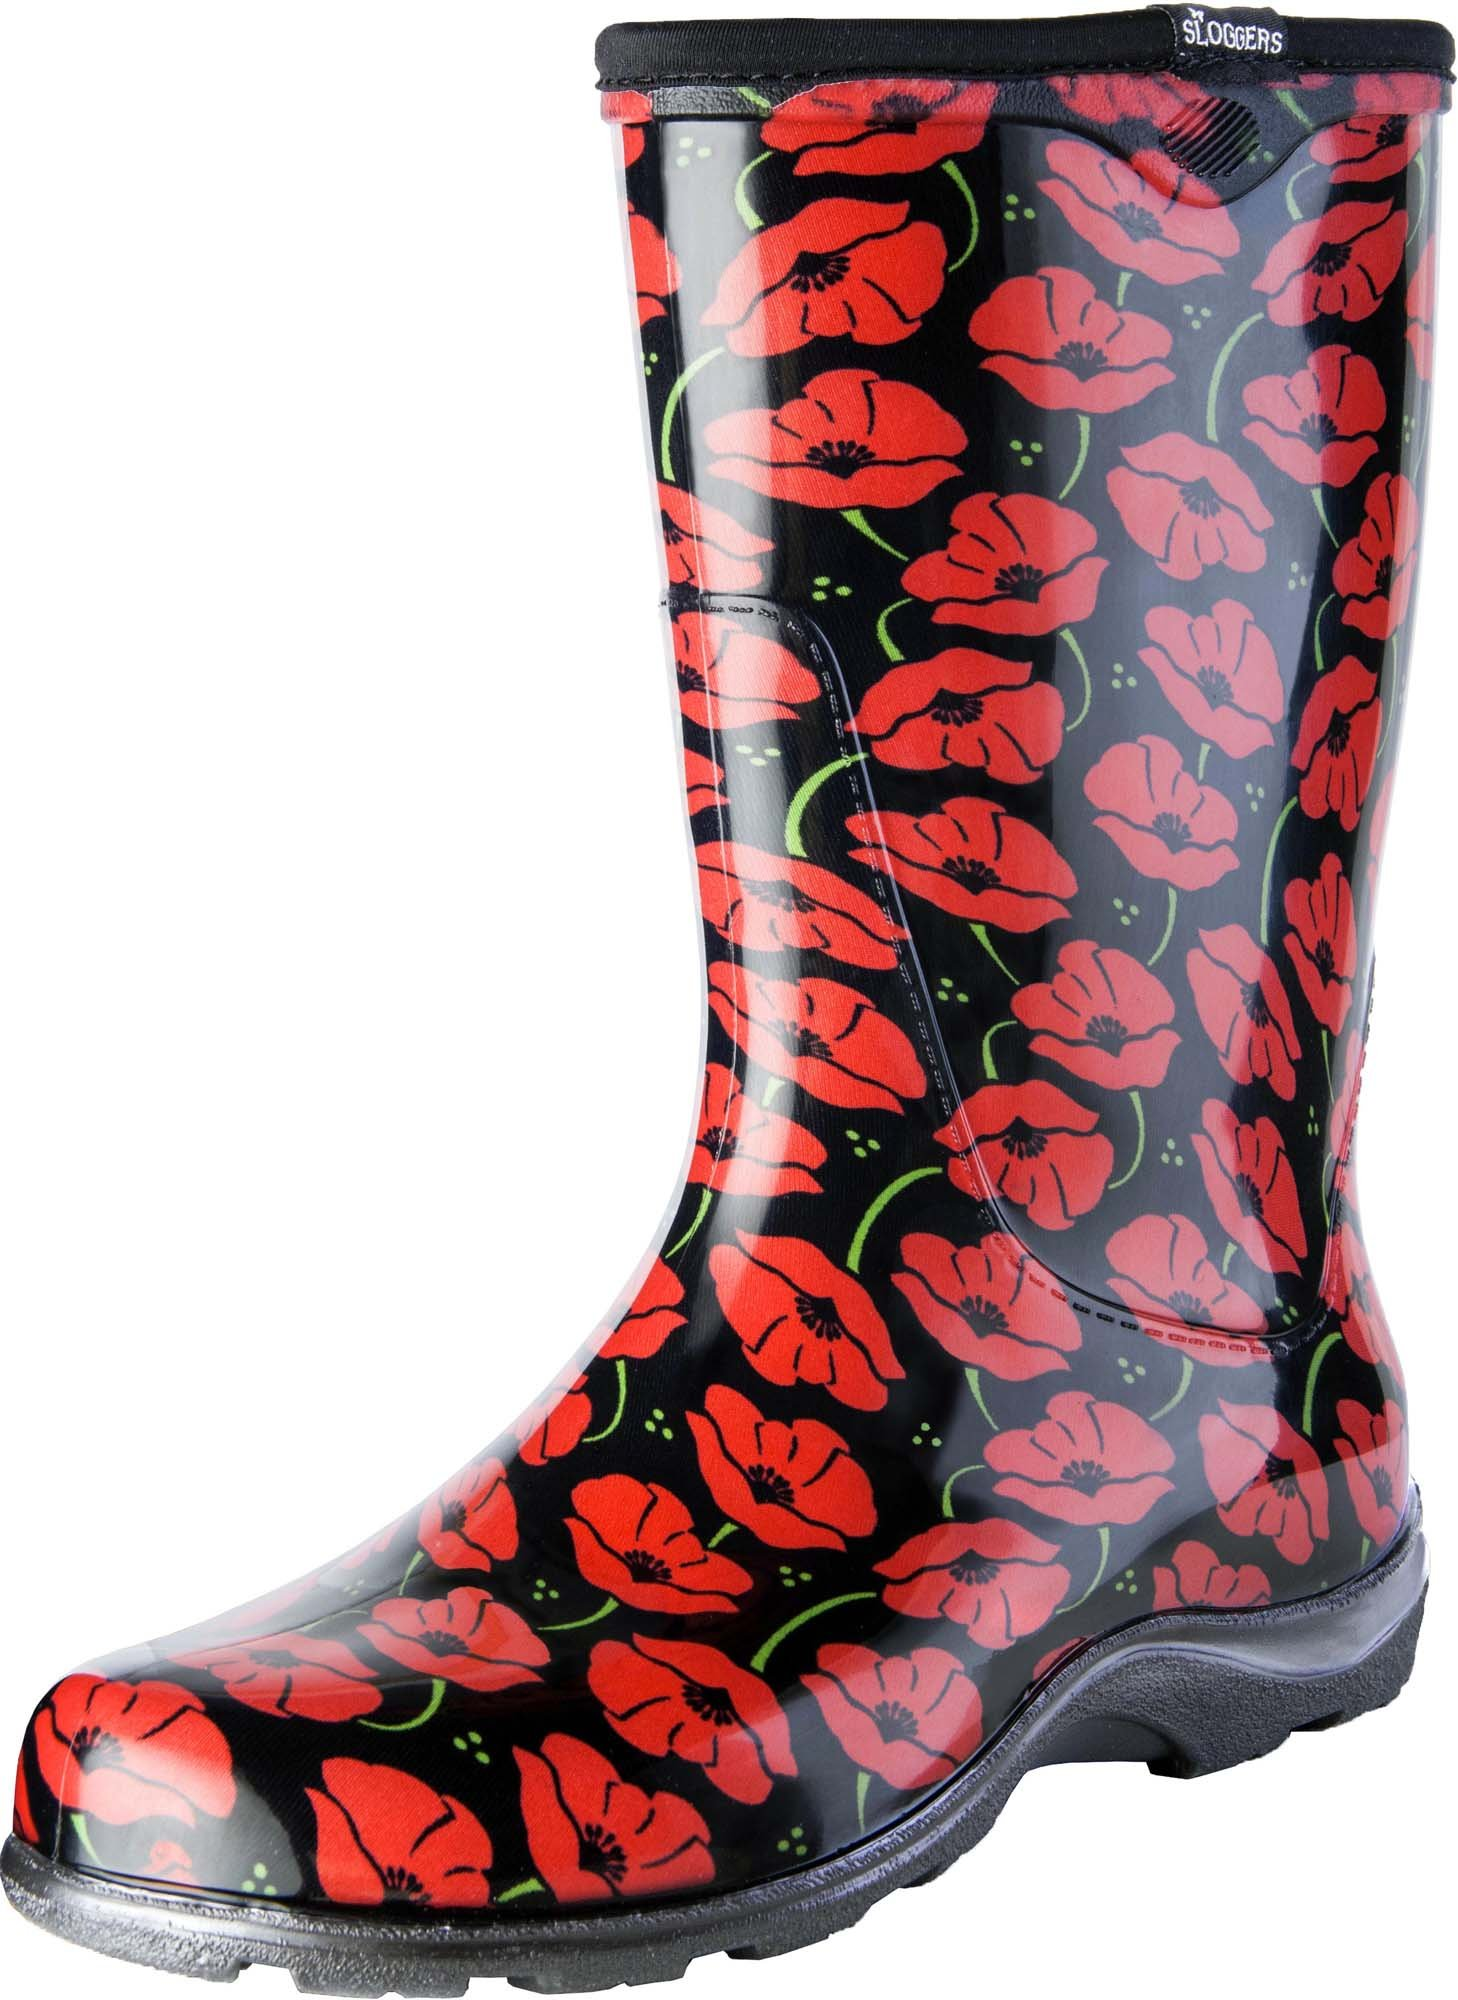 Sloggers Women's Waterproof Rain and Garden Boot with Comfort Insole, Poppy Red, Size 8, Style 5016POR08